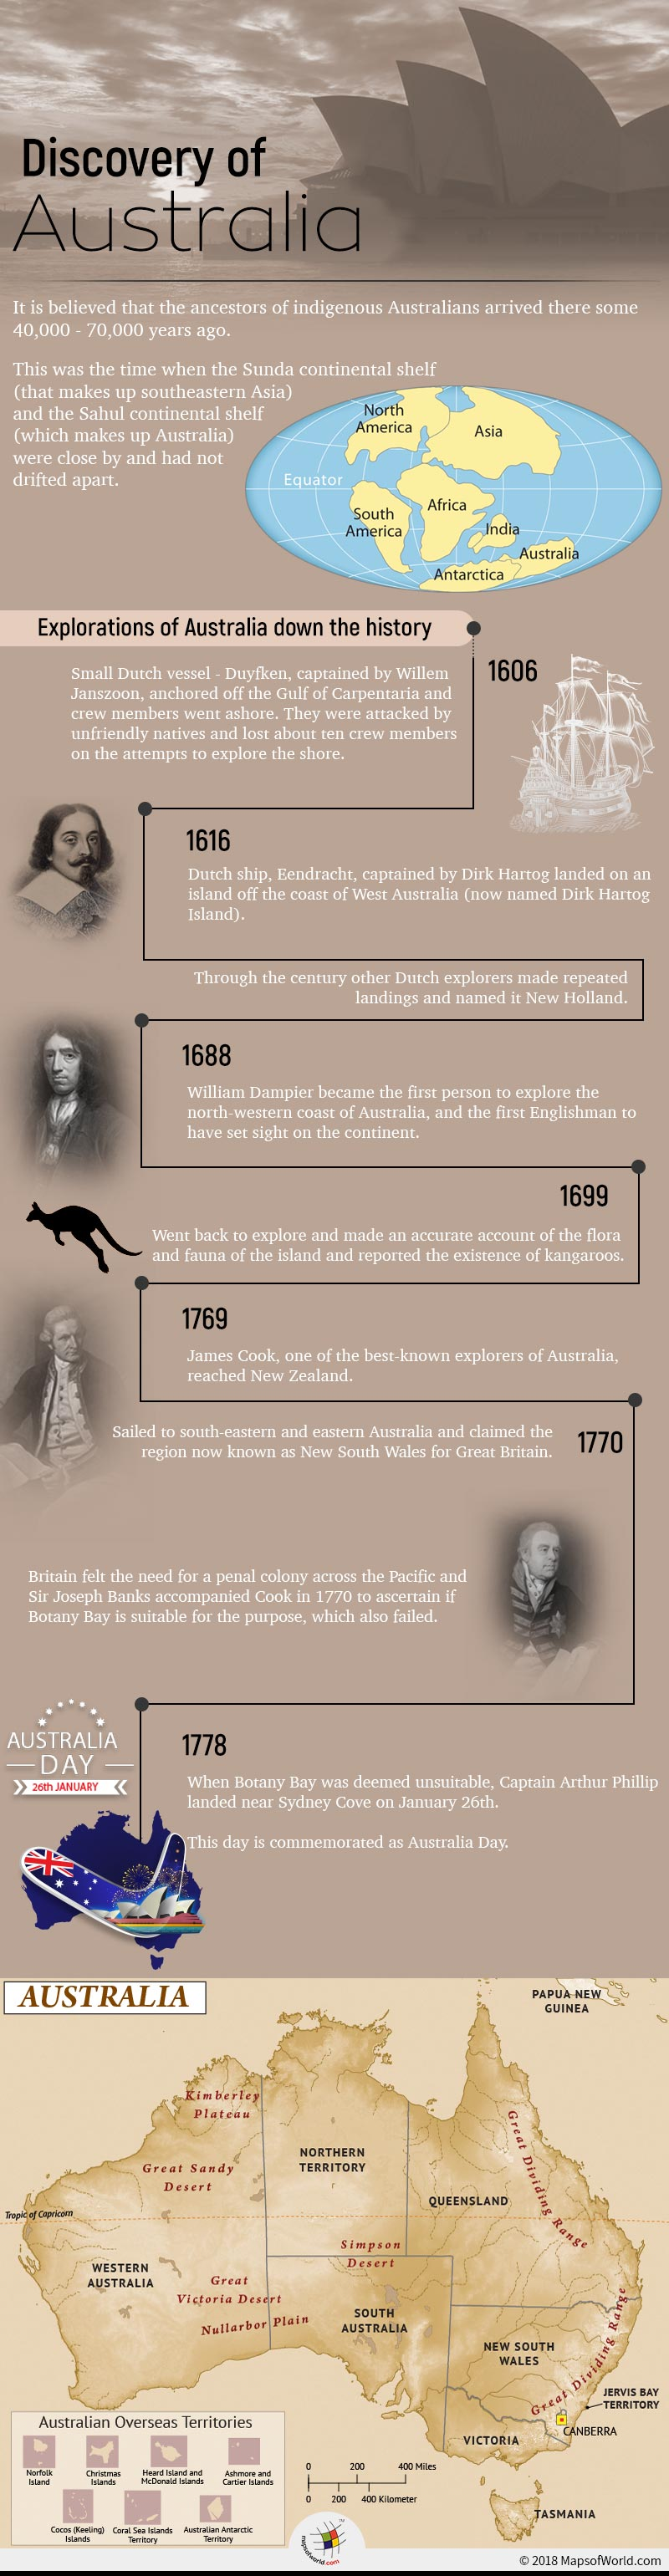 Infographic depicting the discovery of Australia